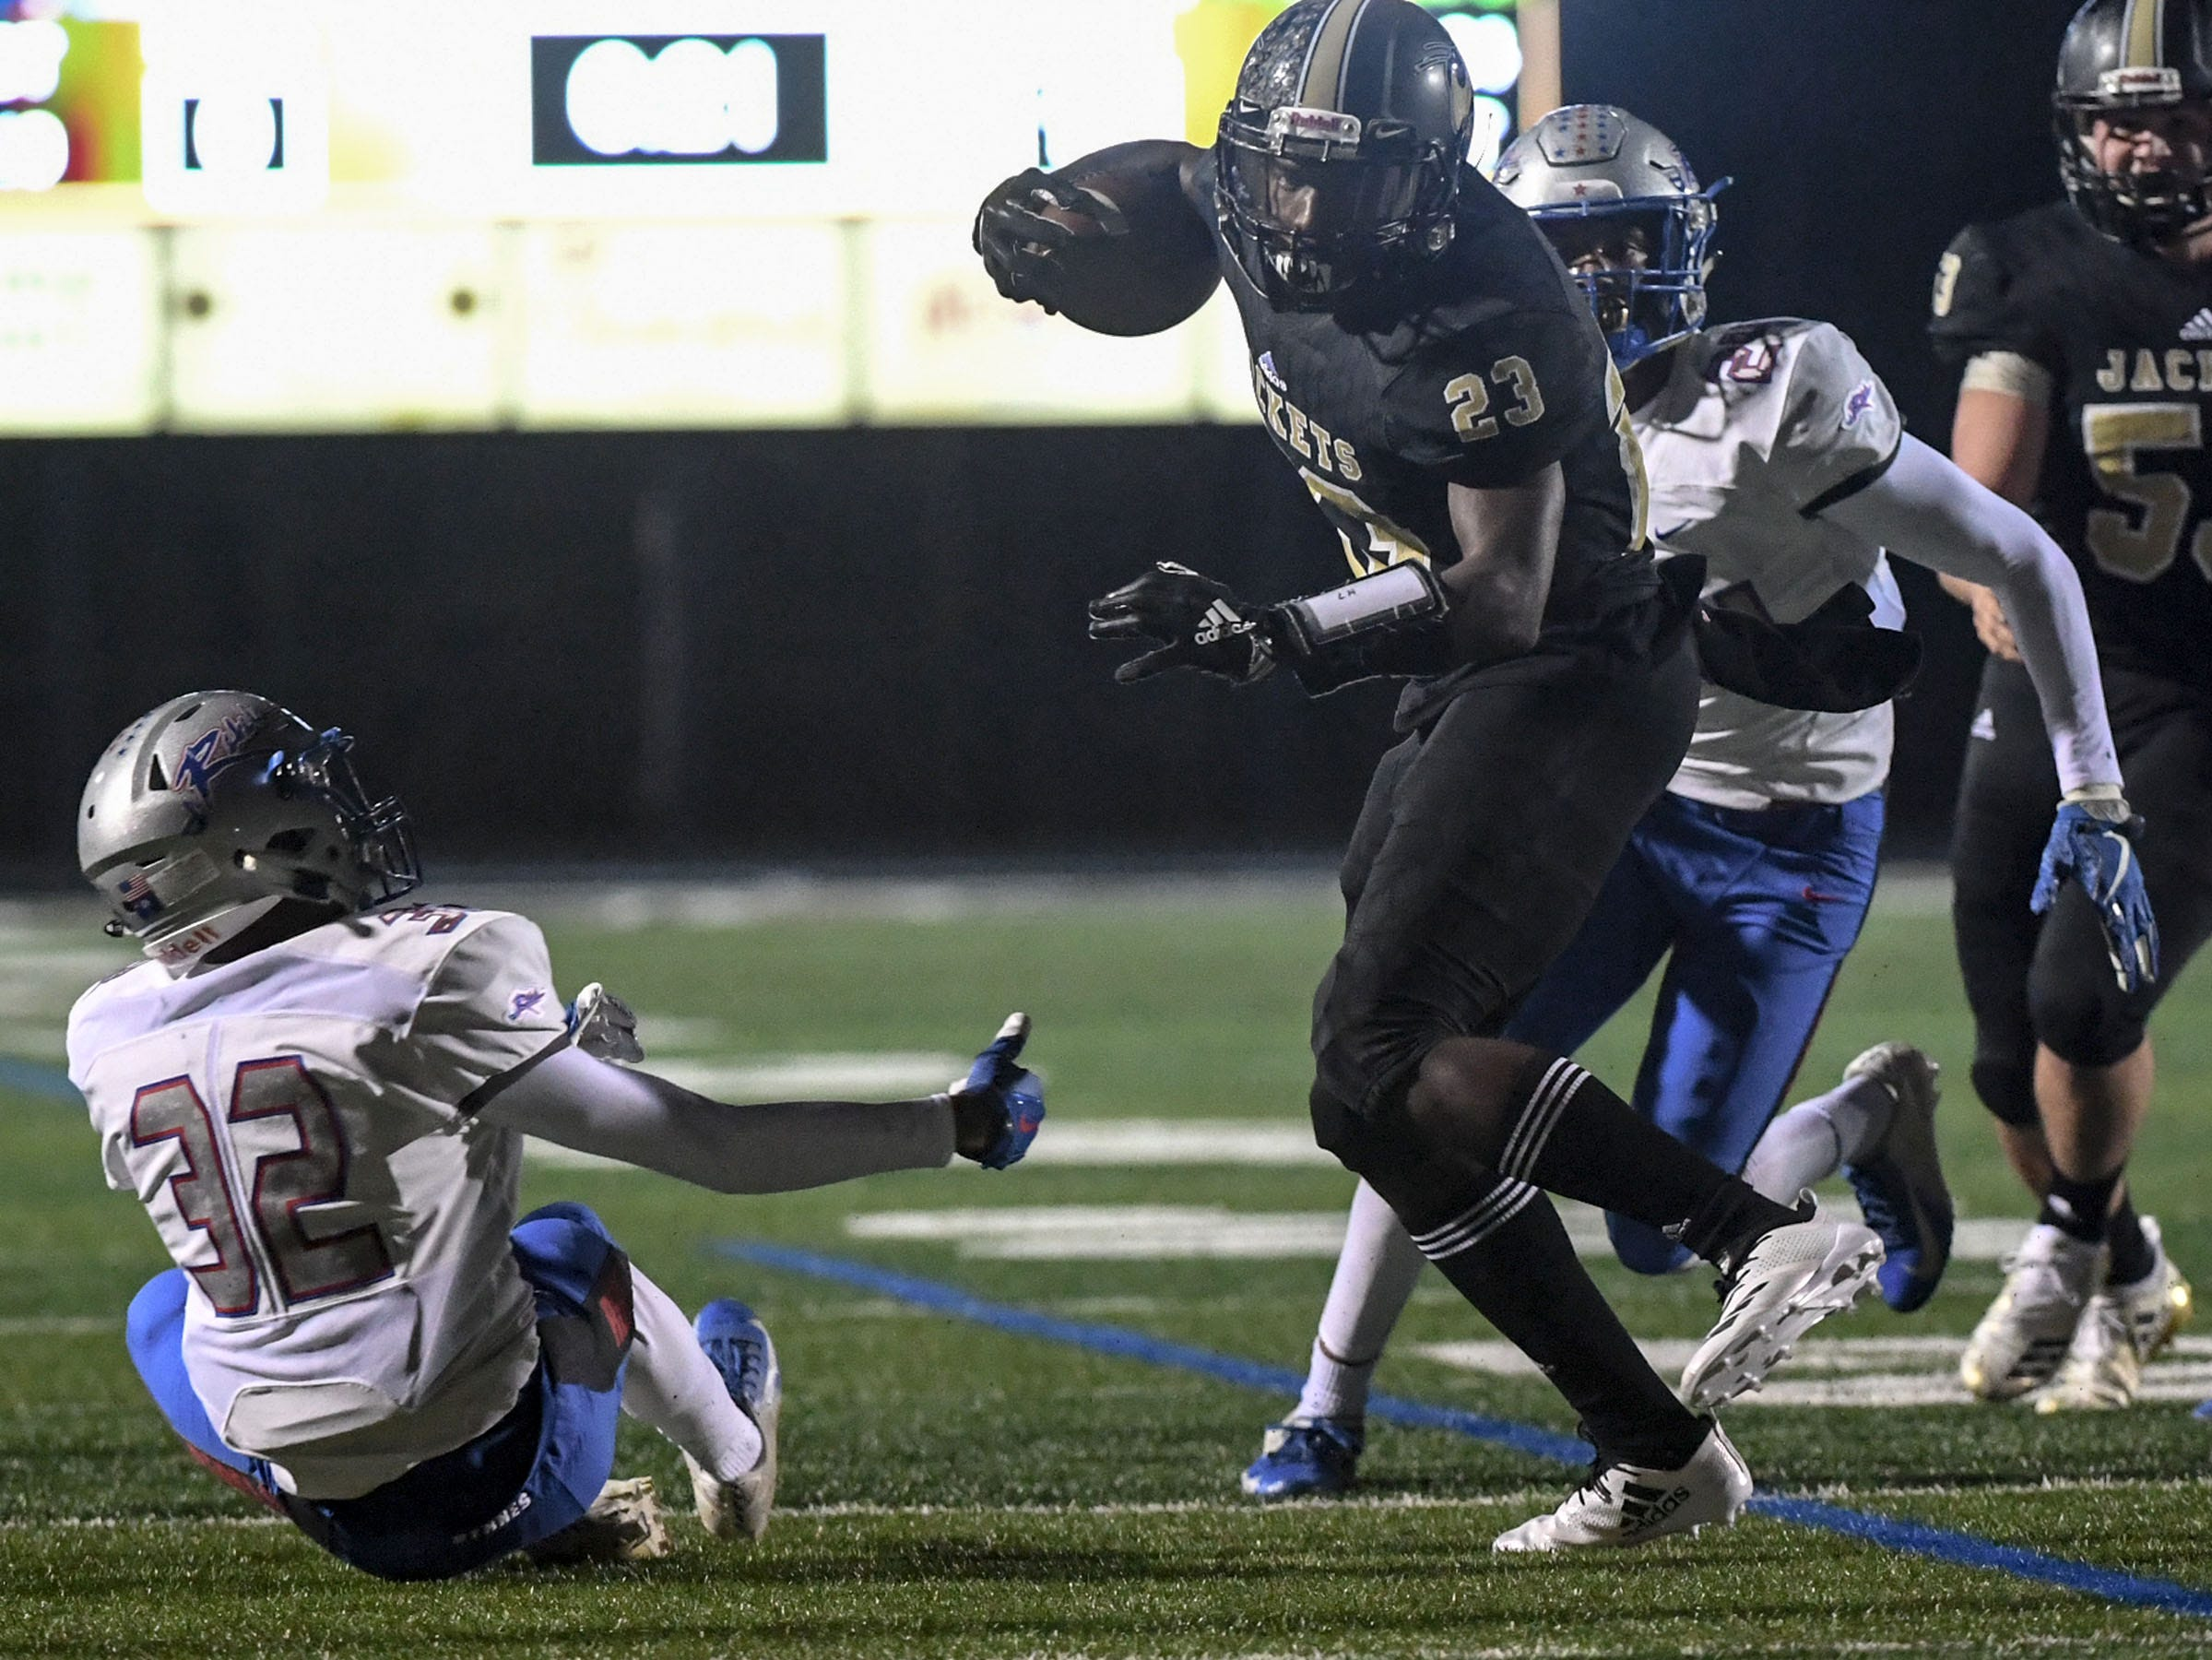 TL Hanna senior Isaiah Norris (23) runs near Byrnes junior Nijae Crouch (32) during the first quarter of the Class AAAAA state playoffs at TL Hanna High School in Anderson on Friday, November 30, 2018.